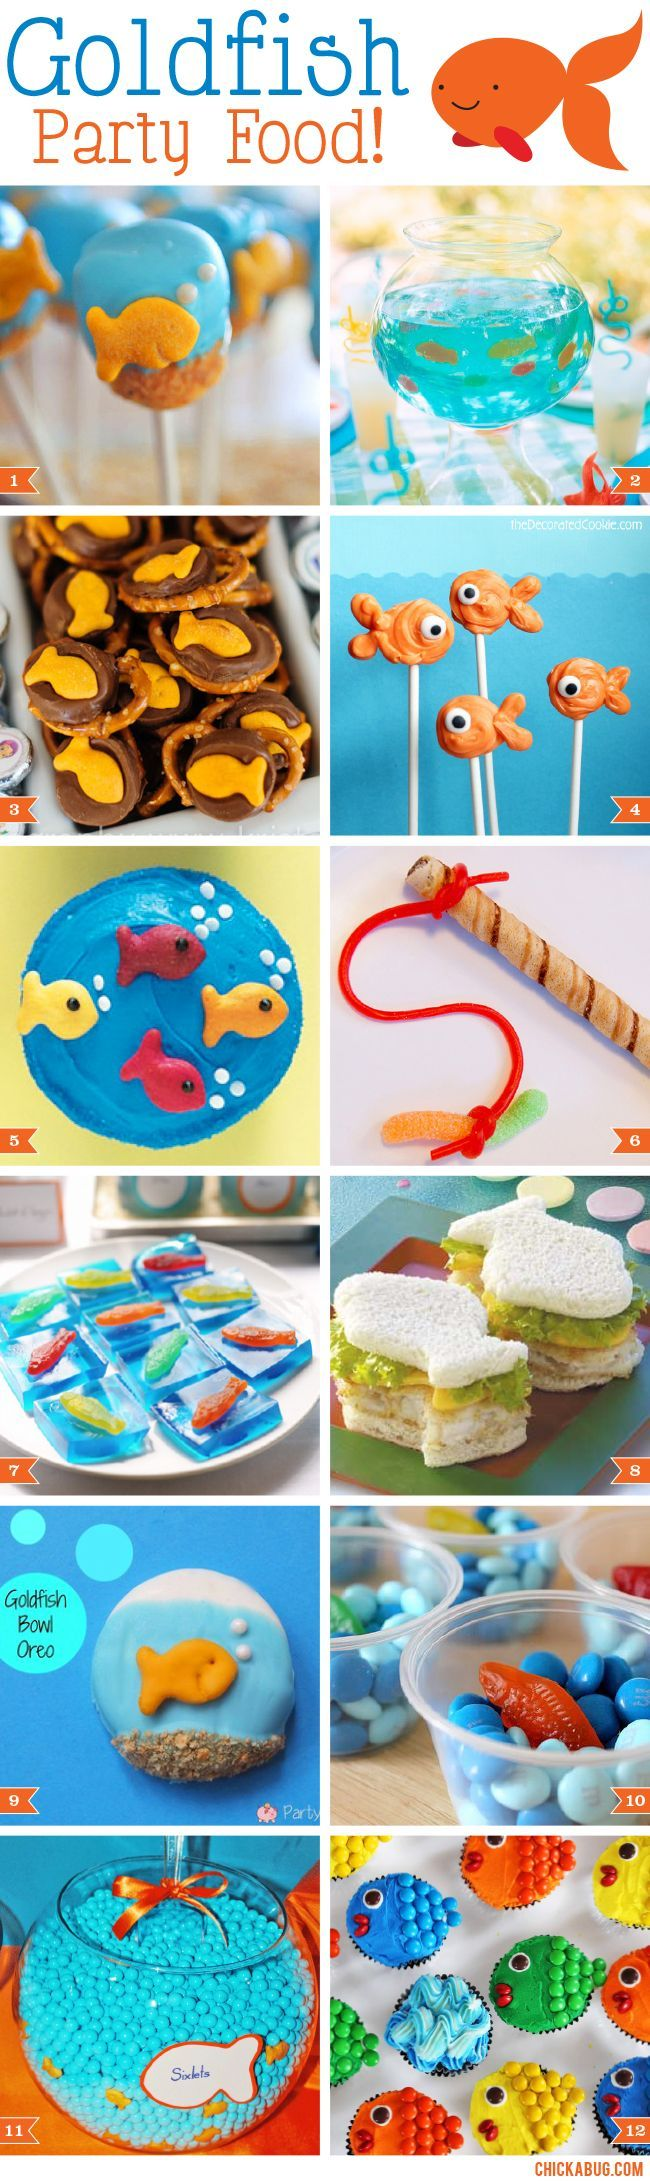 Goldfish party food ideas!